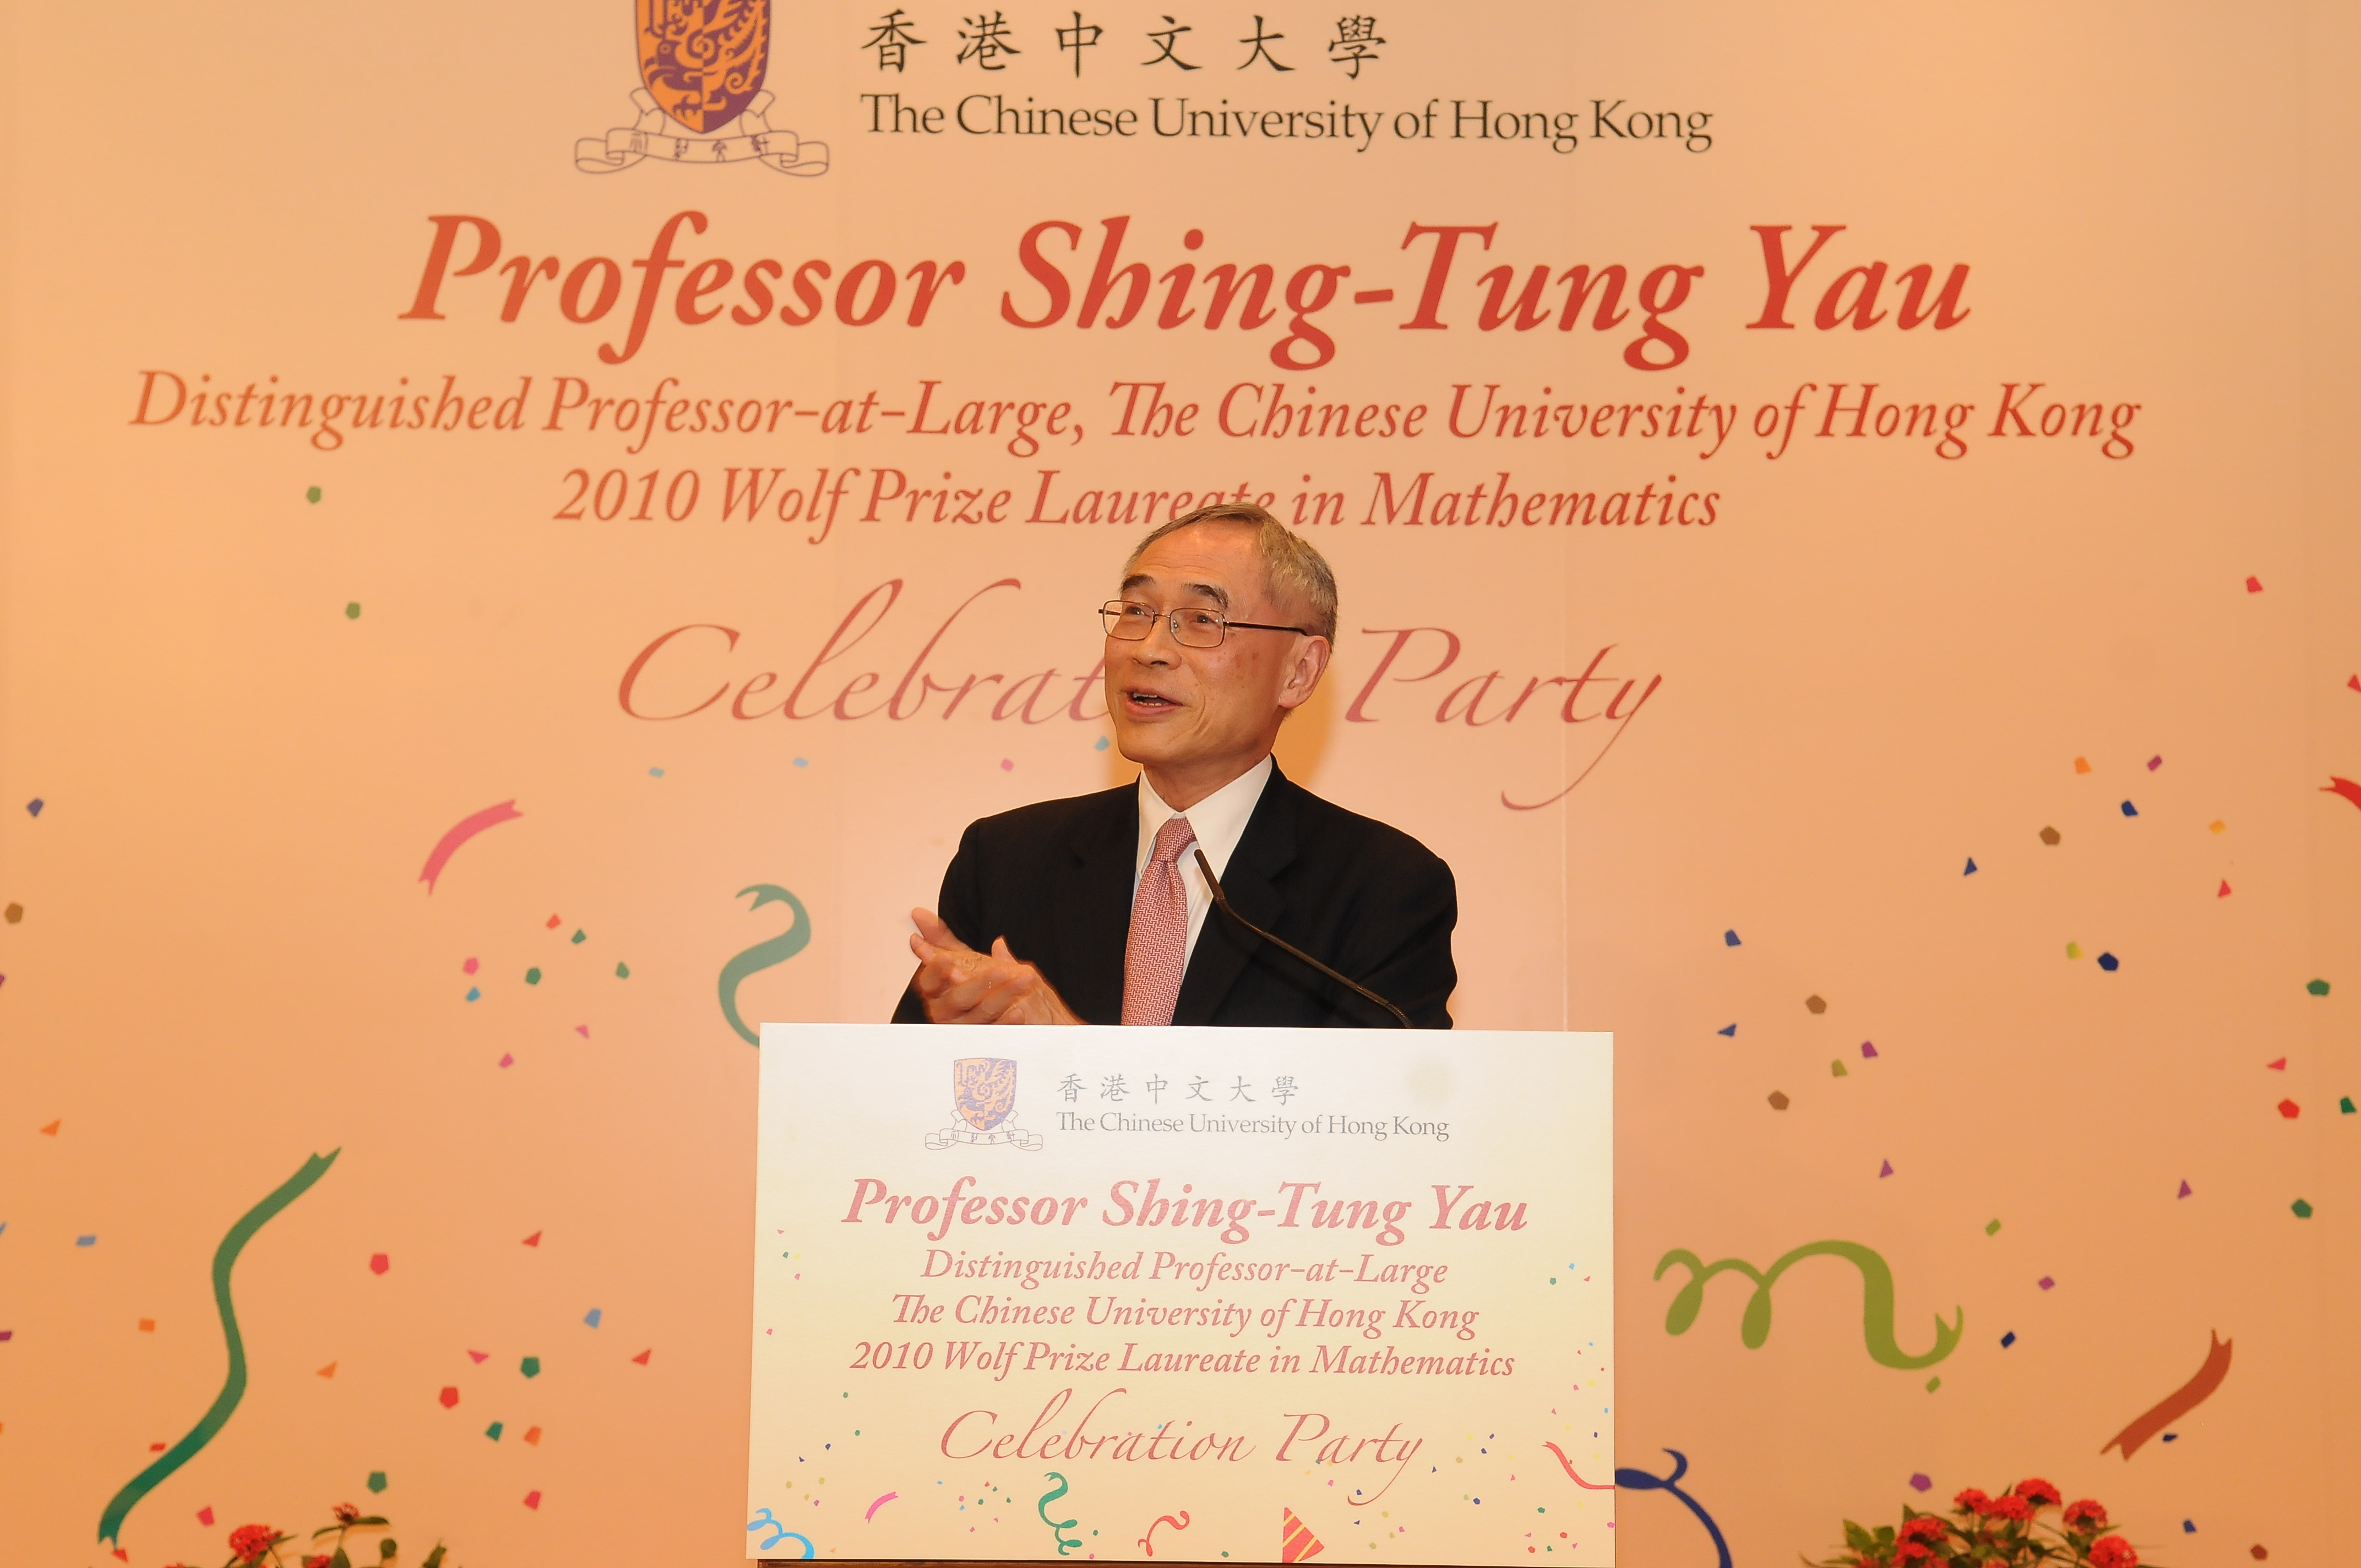 Welcoming address by CUHK Vice-Chancellor, Prof. Lawrence J. Lau